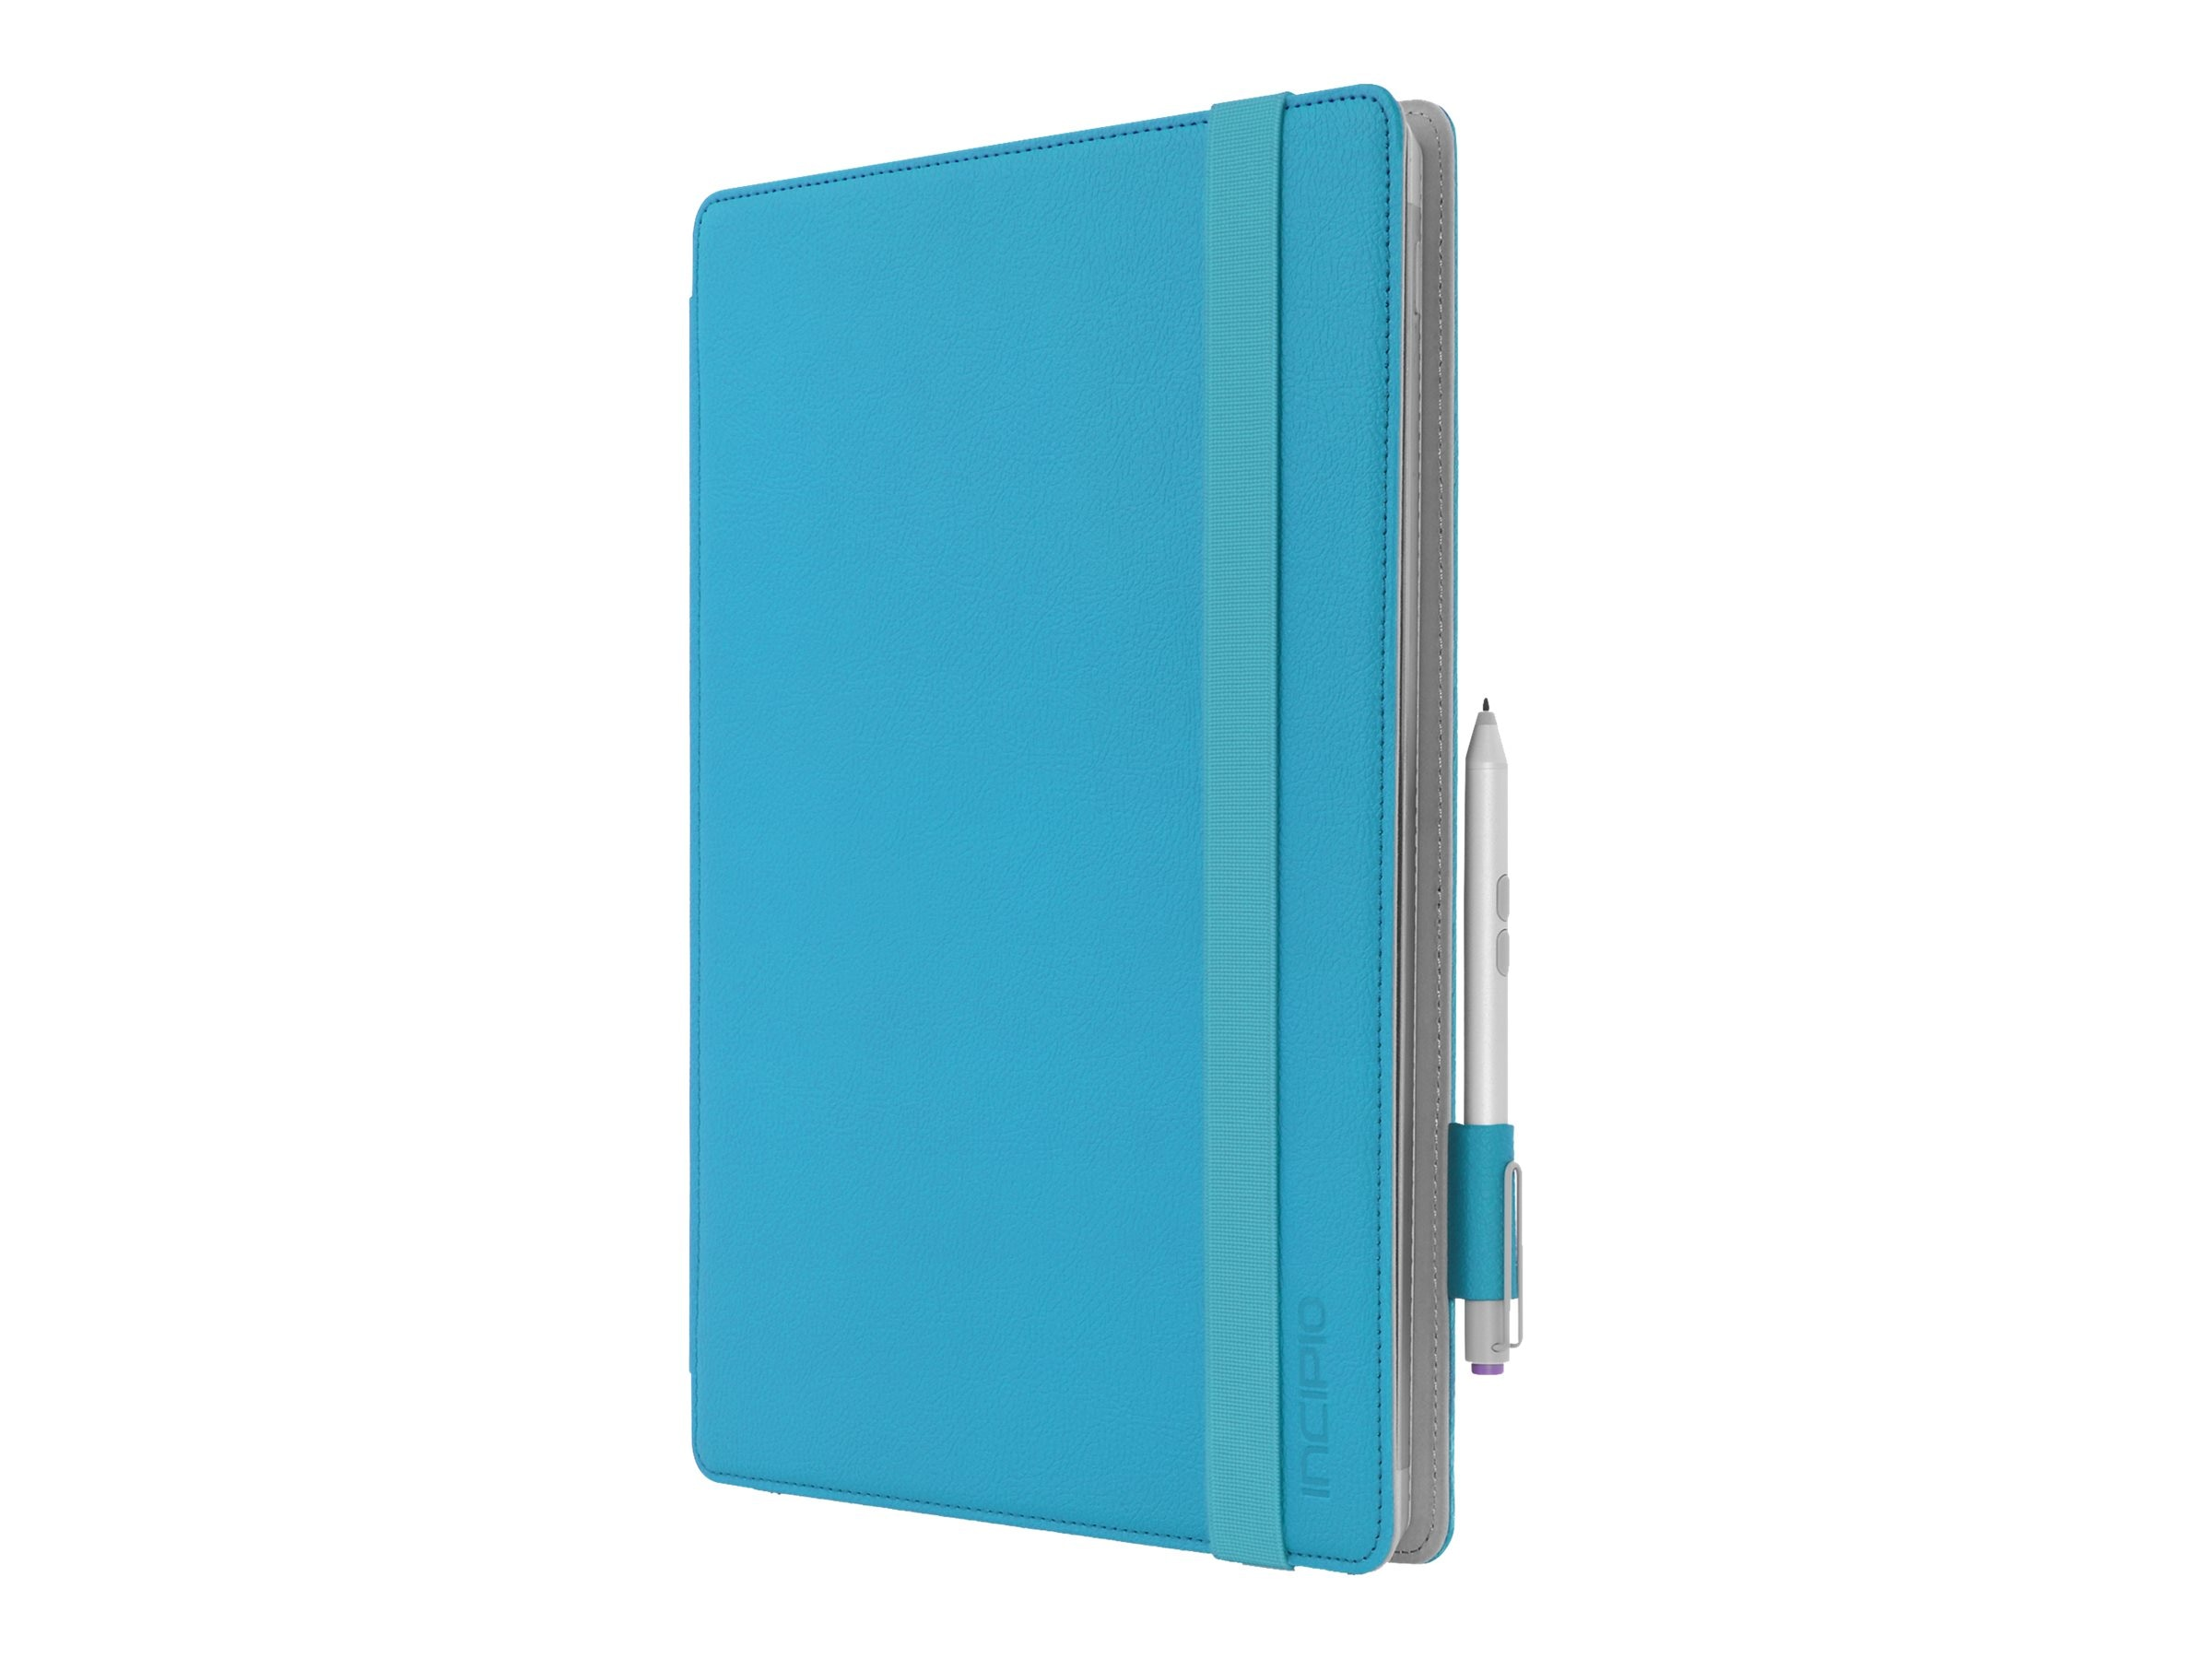 Incipio Roosevelt Slim Folio w  Snap-On Type Cover Compatibility for Microsoft Surface Pro 3 & 4, Cyan, MRSF-070-CYN